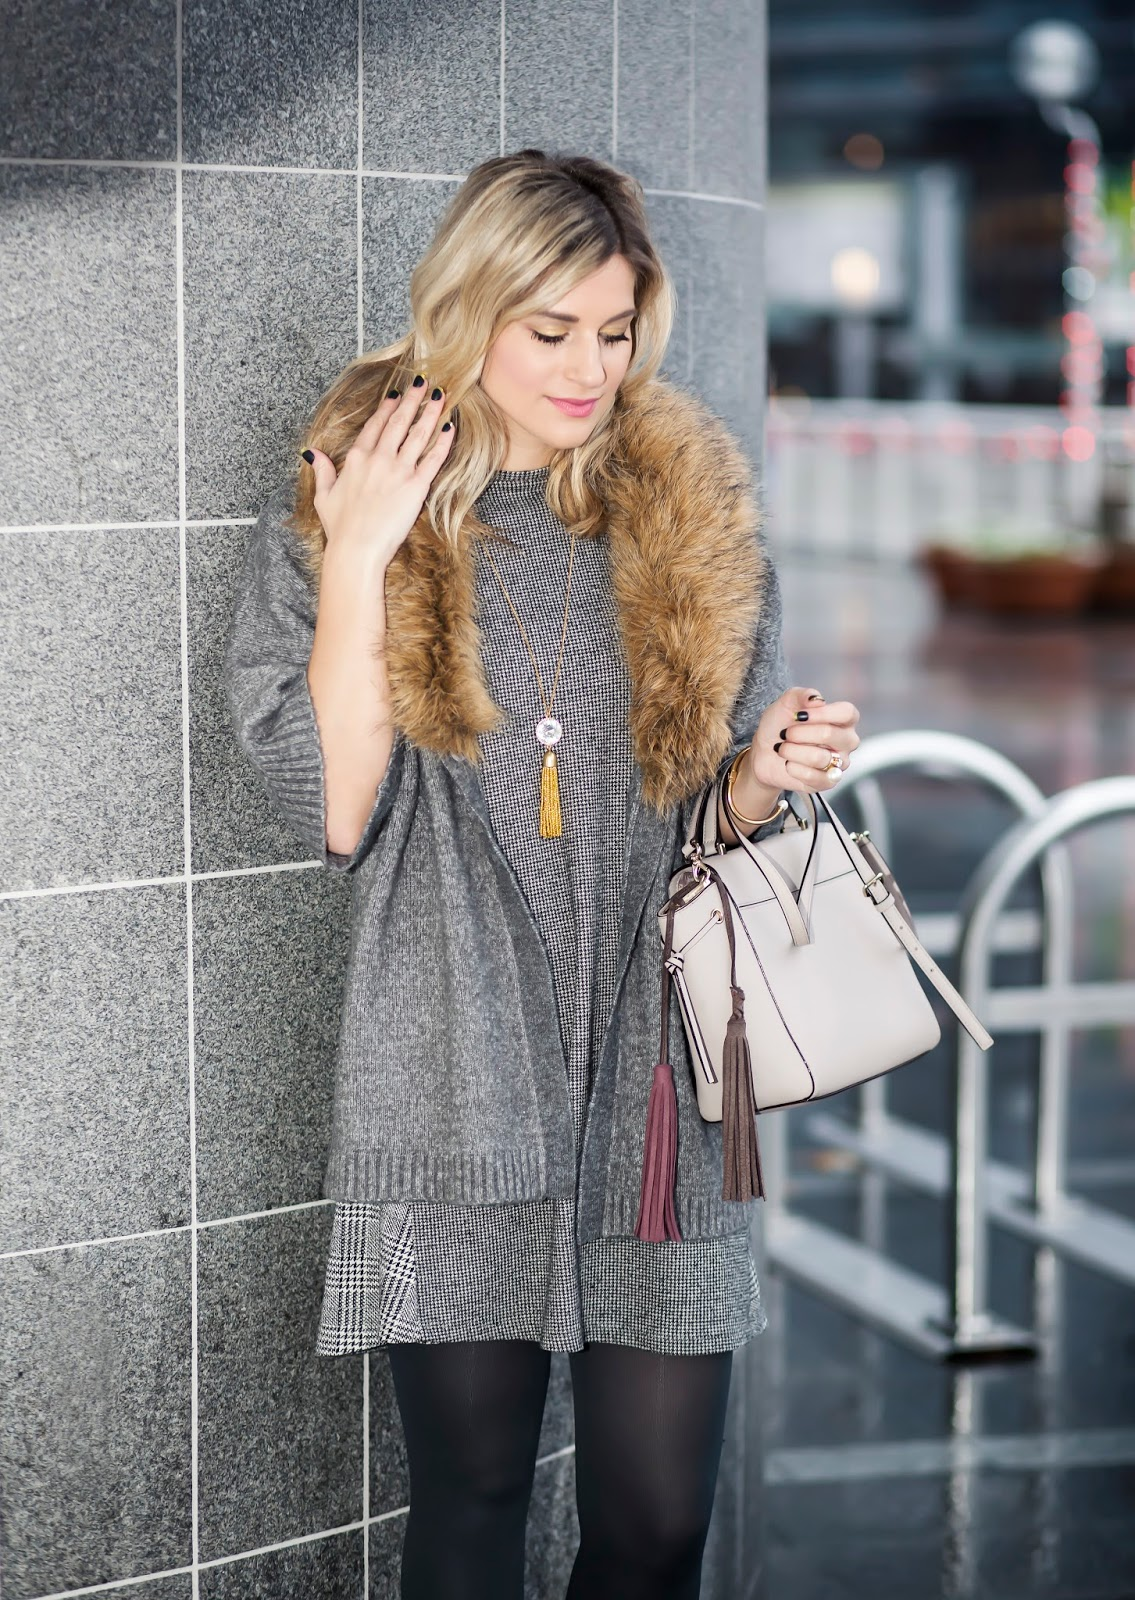 Bijuleni - Faux Fur grey cardi, Zara grey shift dress, grey tights, Steve Madden suede booties and Kate Spade Handbag